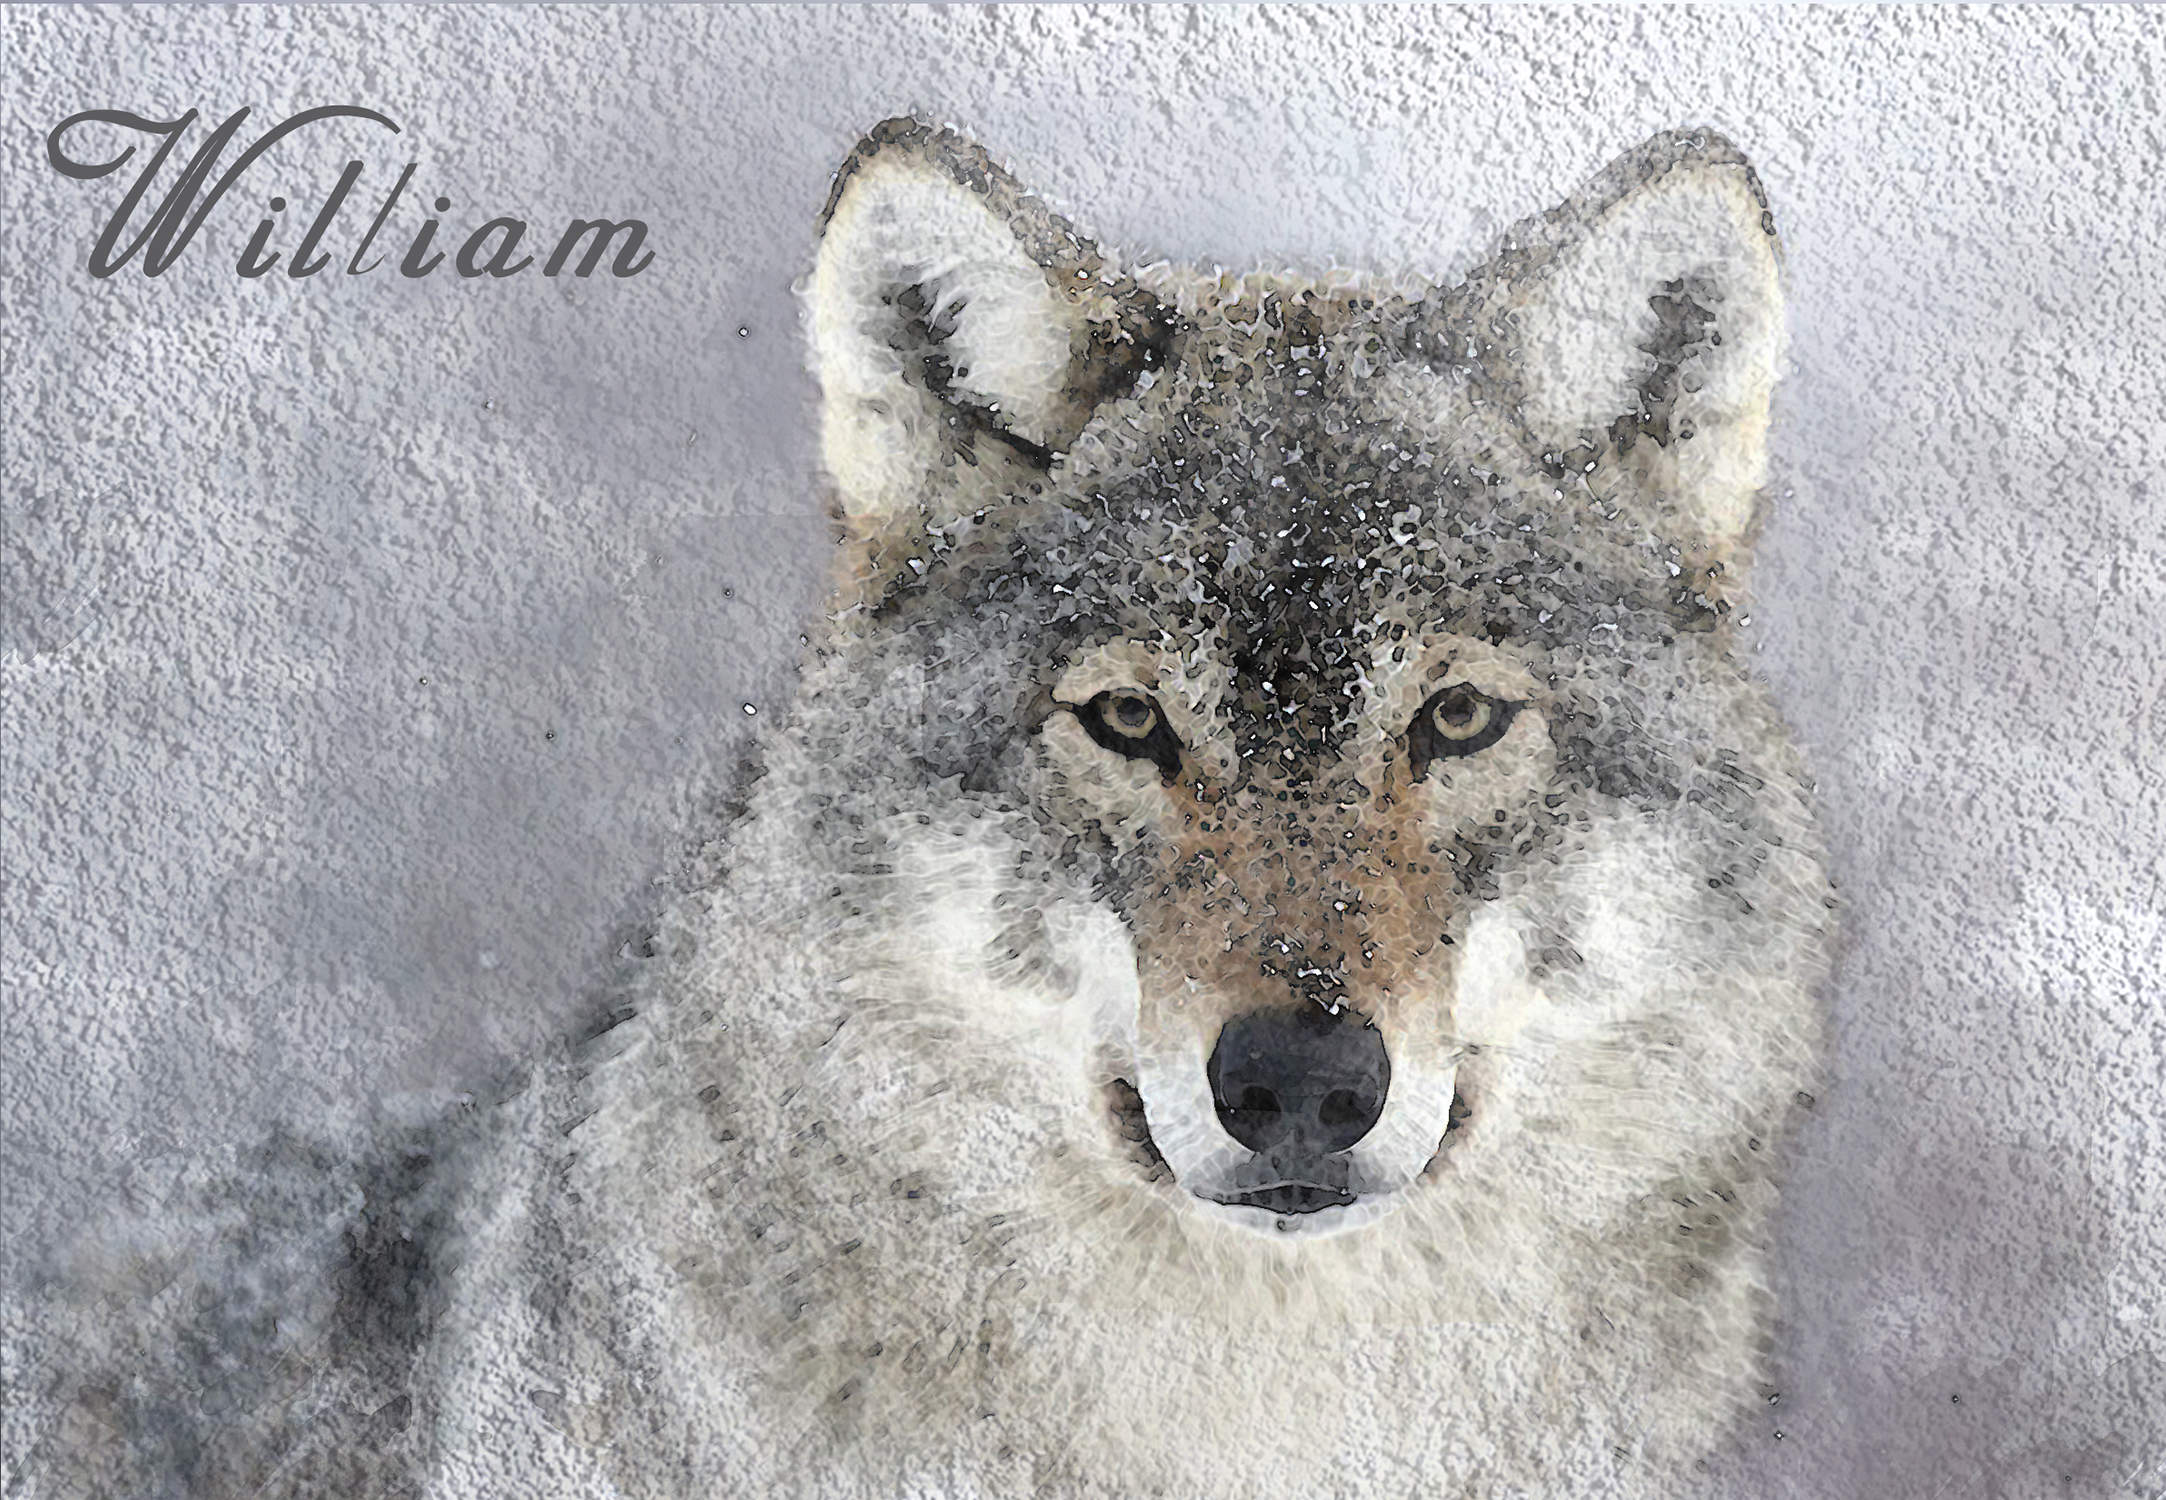 Wolf - cm.24x30. Your pet with your name. Sweet gift idea!